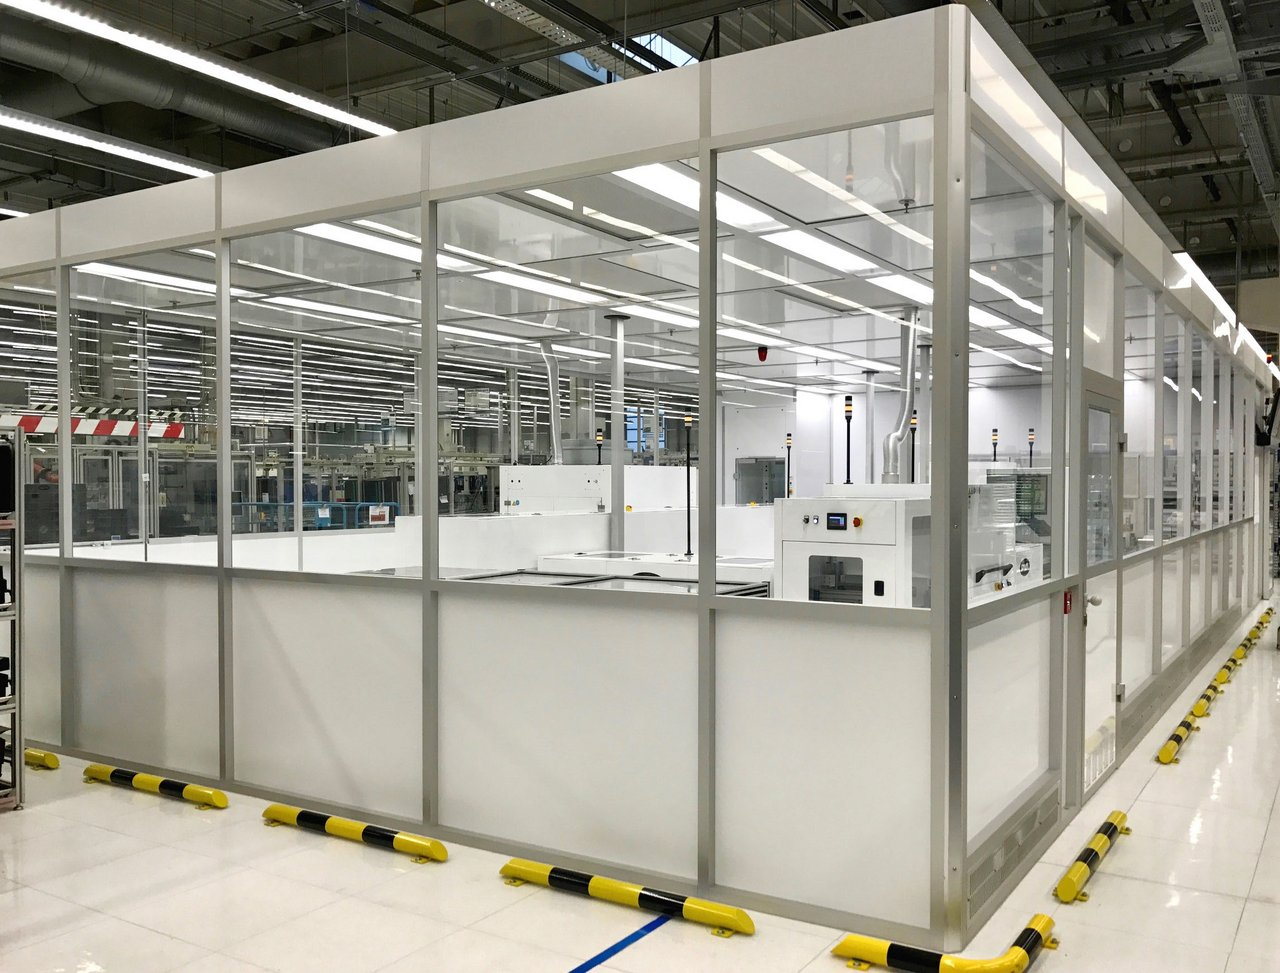 Cleanroom for manufacturing components in the automotive industry, ISO 6